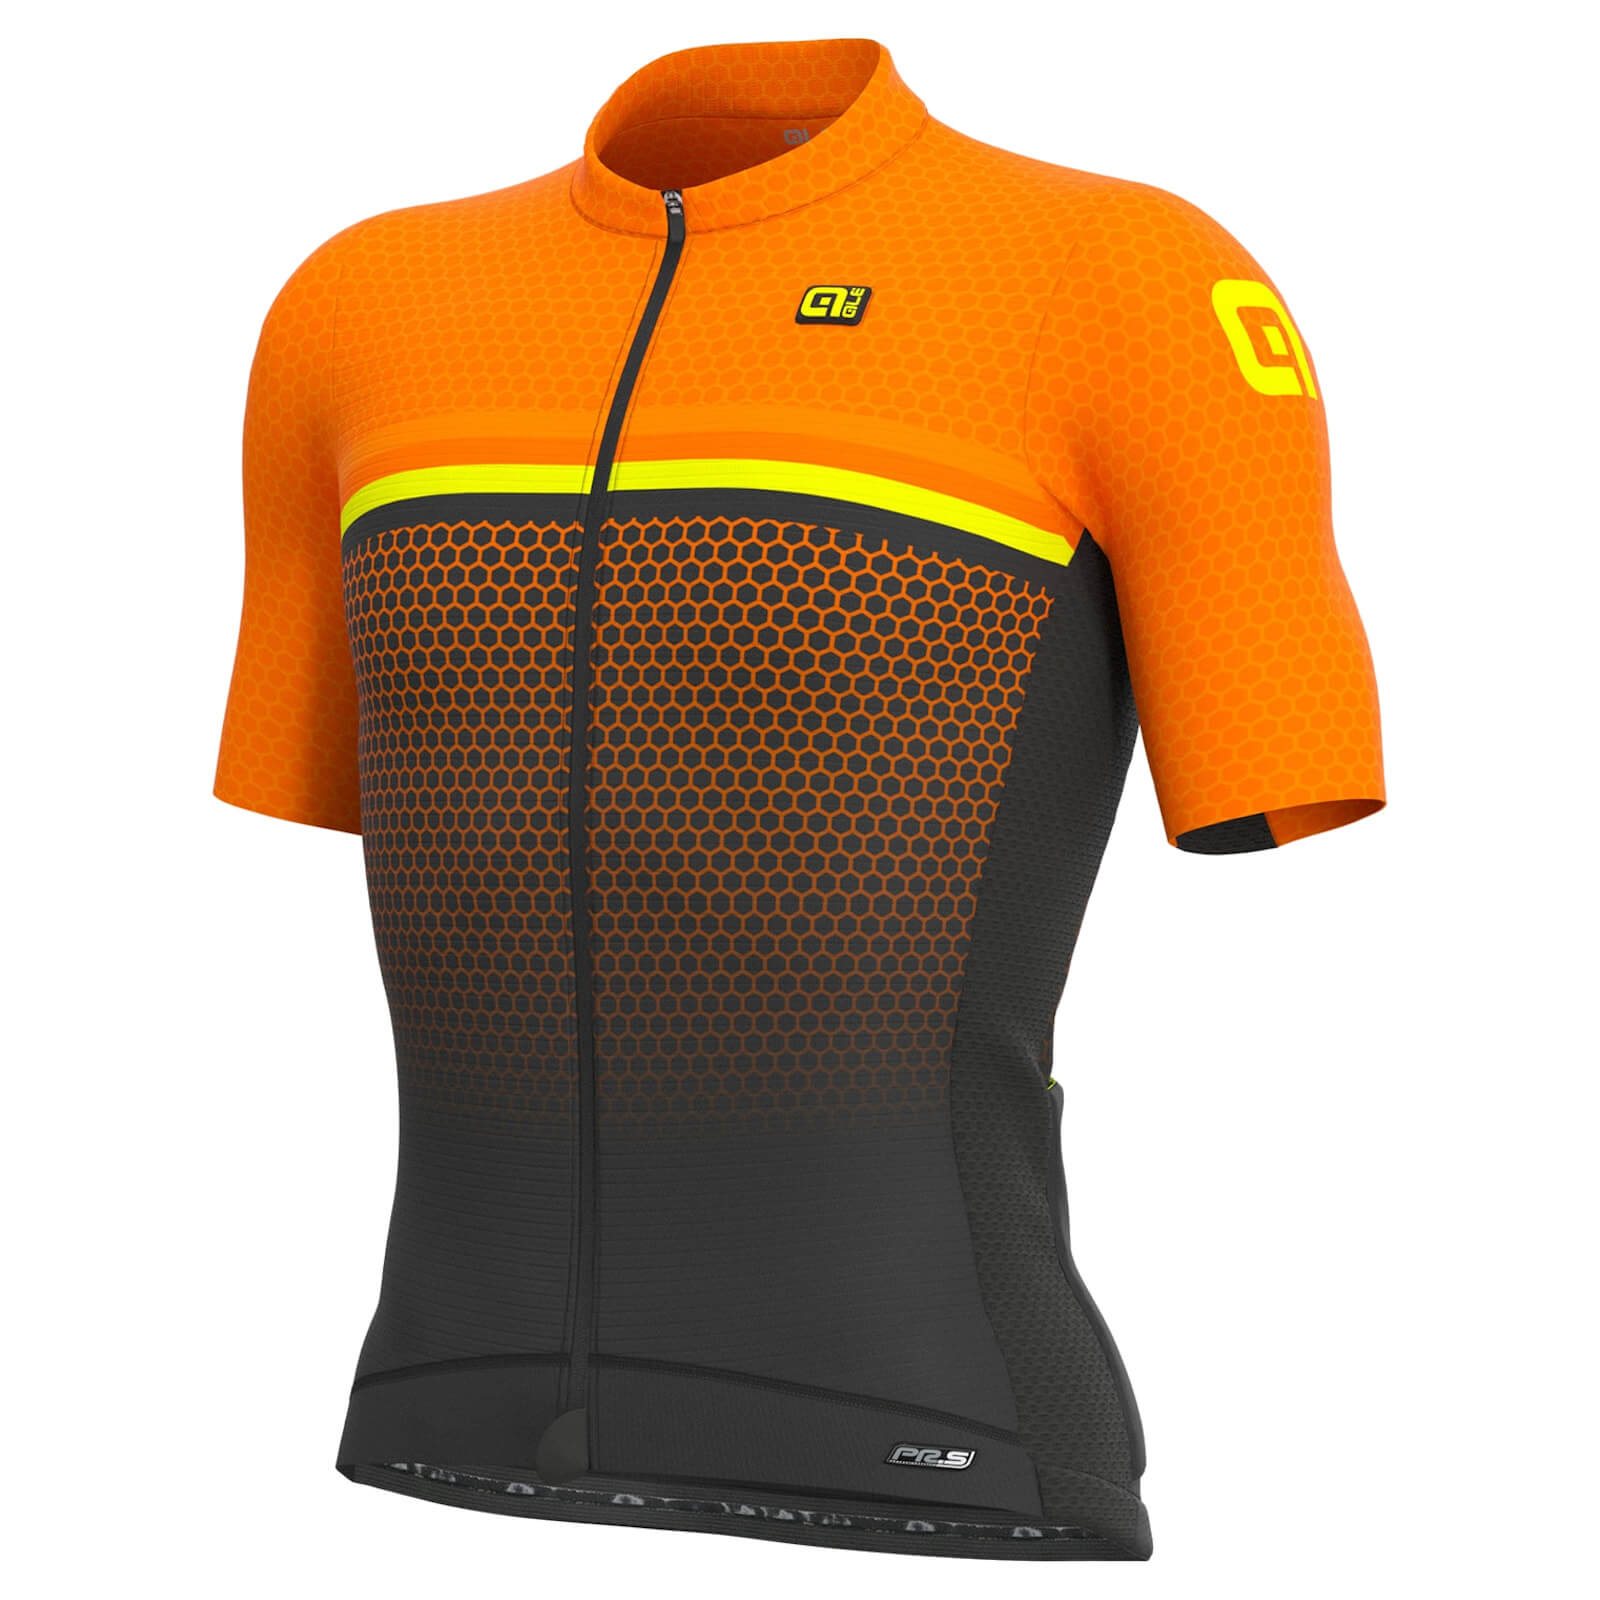 Ale PR-S Bridge Jersey - M - Fluo Orange